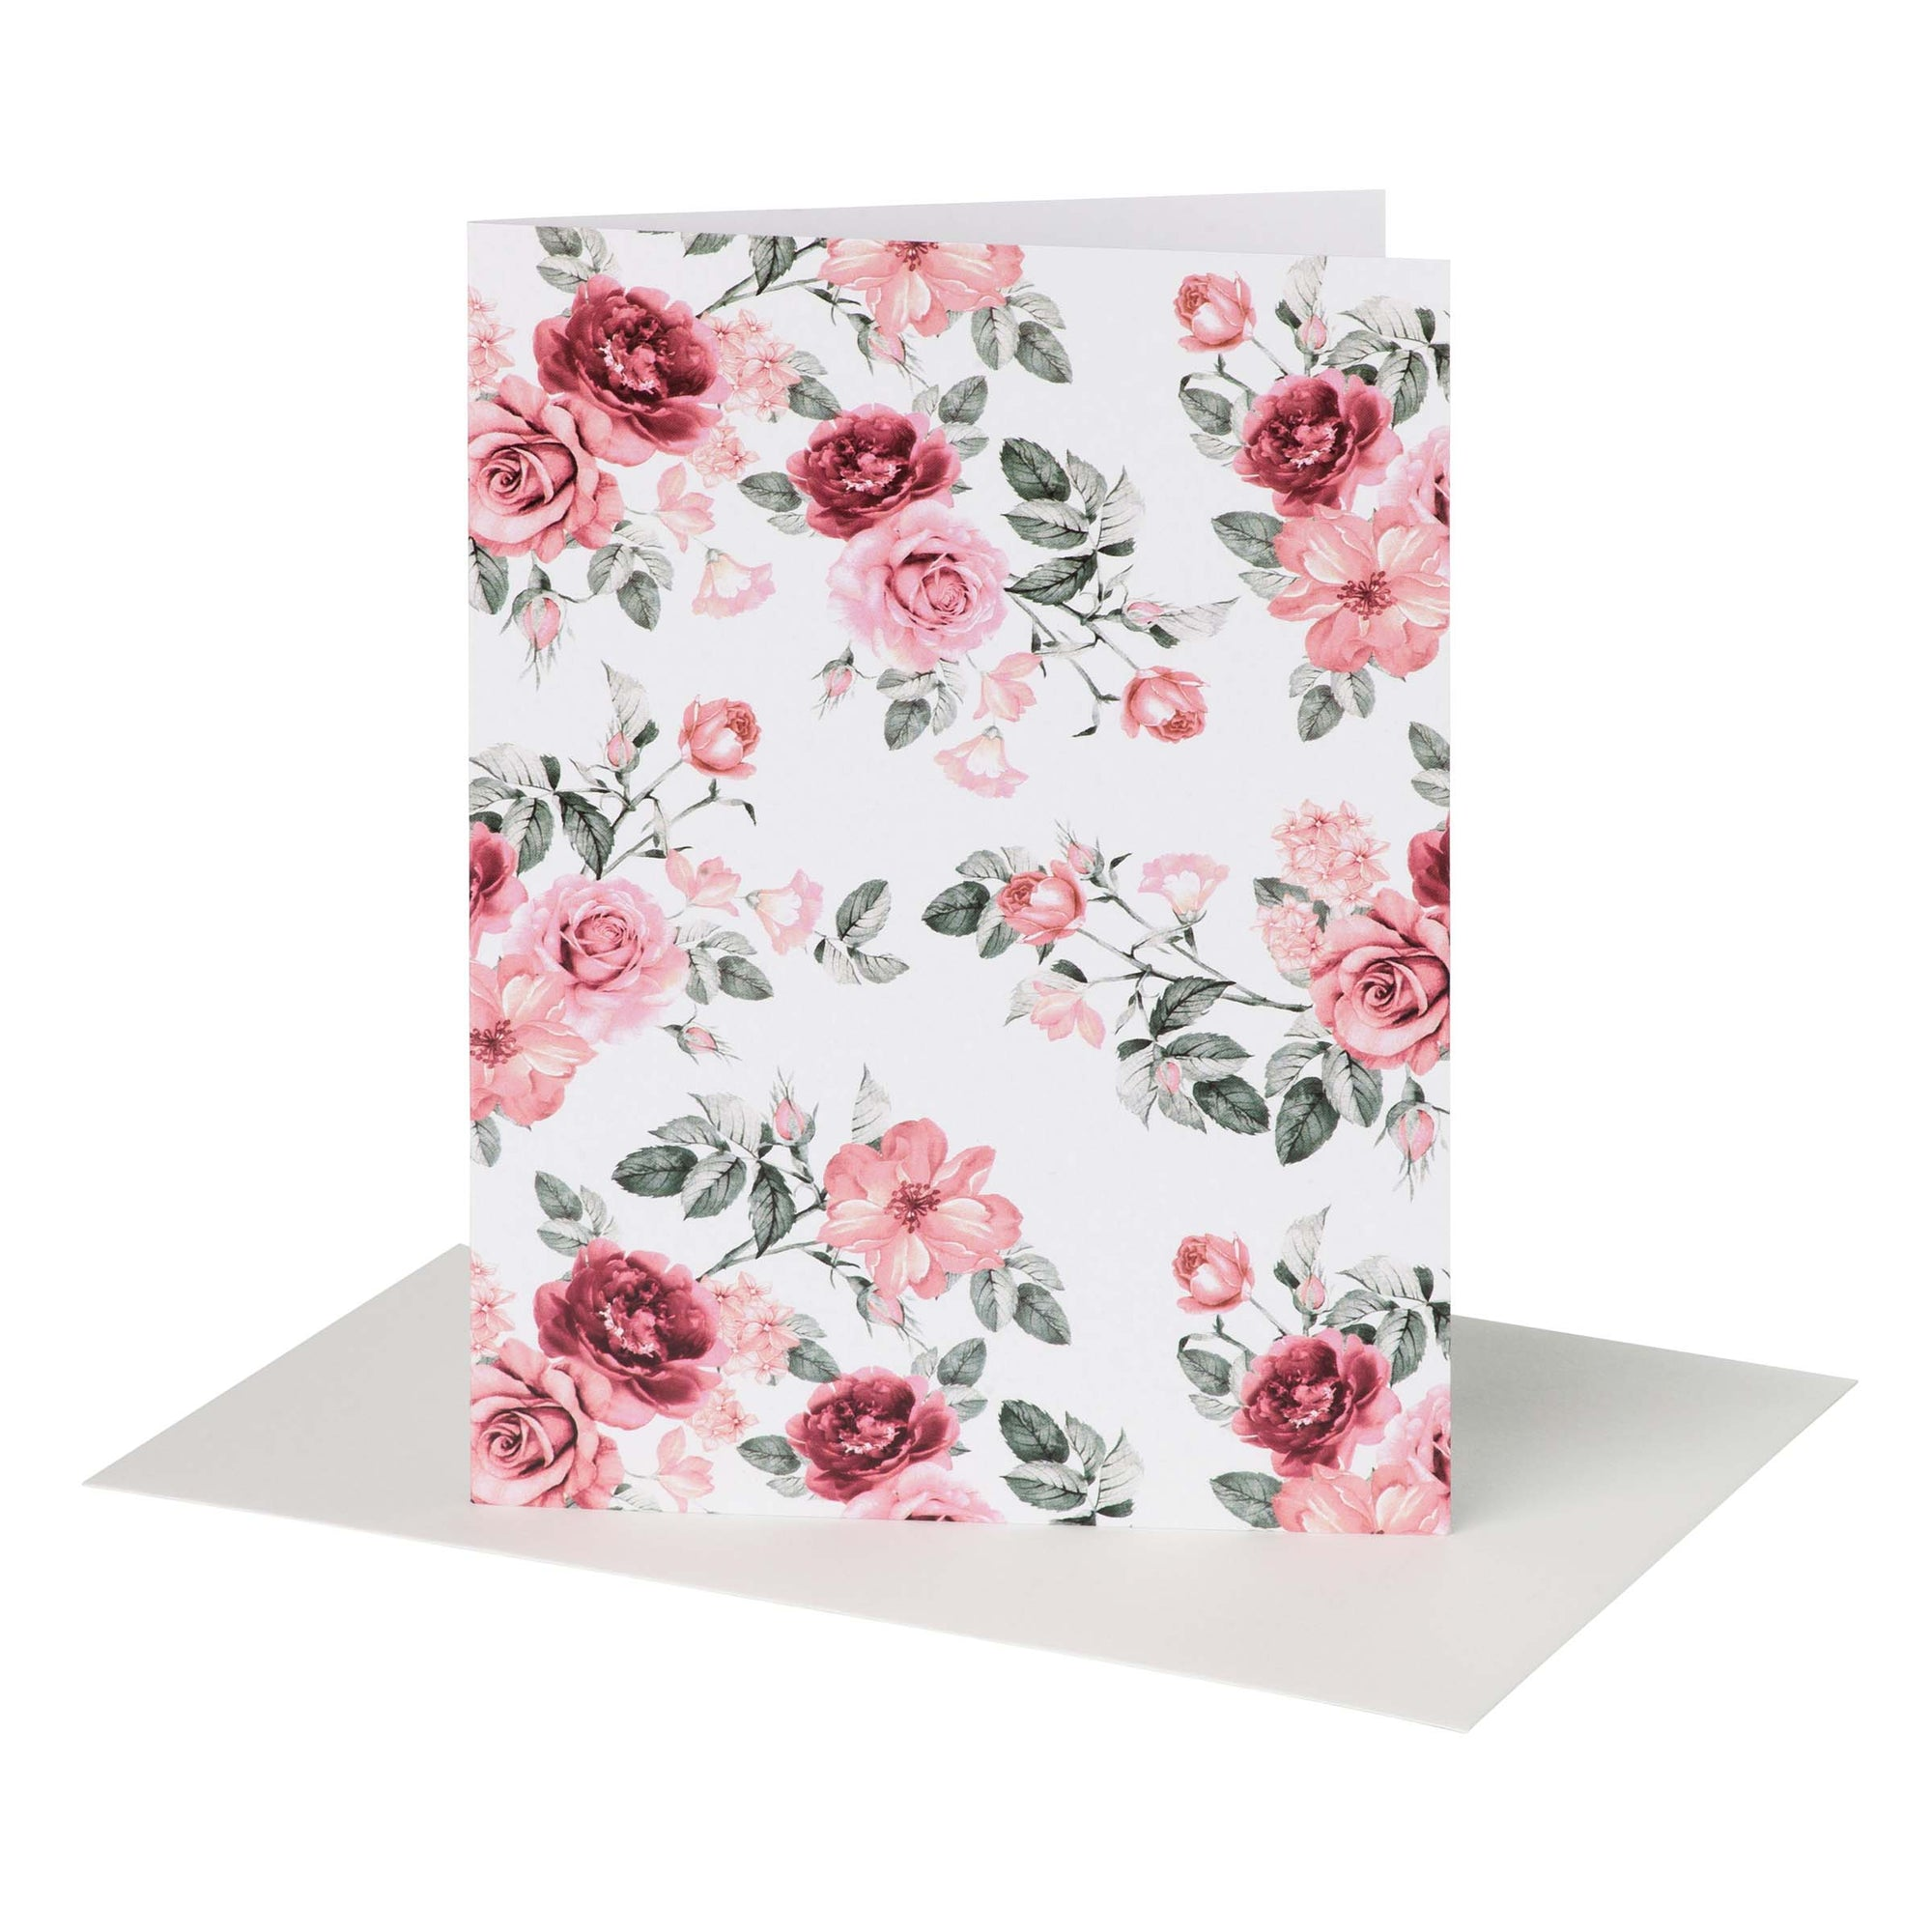 Buy Audrey Floral Greeting Card - Designer Kidz | Special Occasions, Party Wear & Weddings  | Sizes 000-16 | Little Girls Party Dresses, Tutu Dresses, Flower Girl Dresses | Pay with Afterpay | Free AU Delivery Over $80